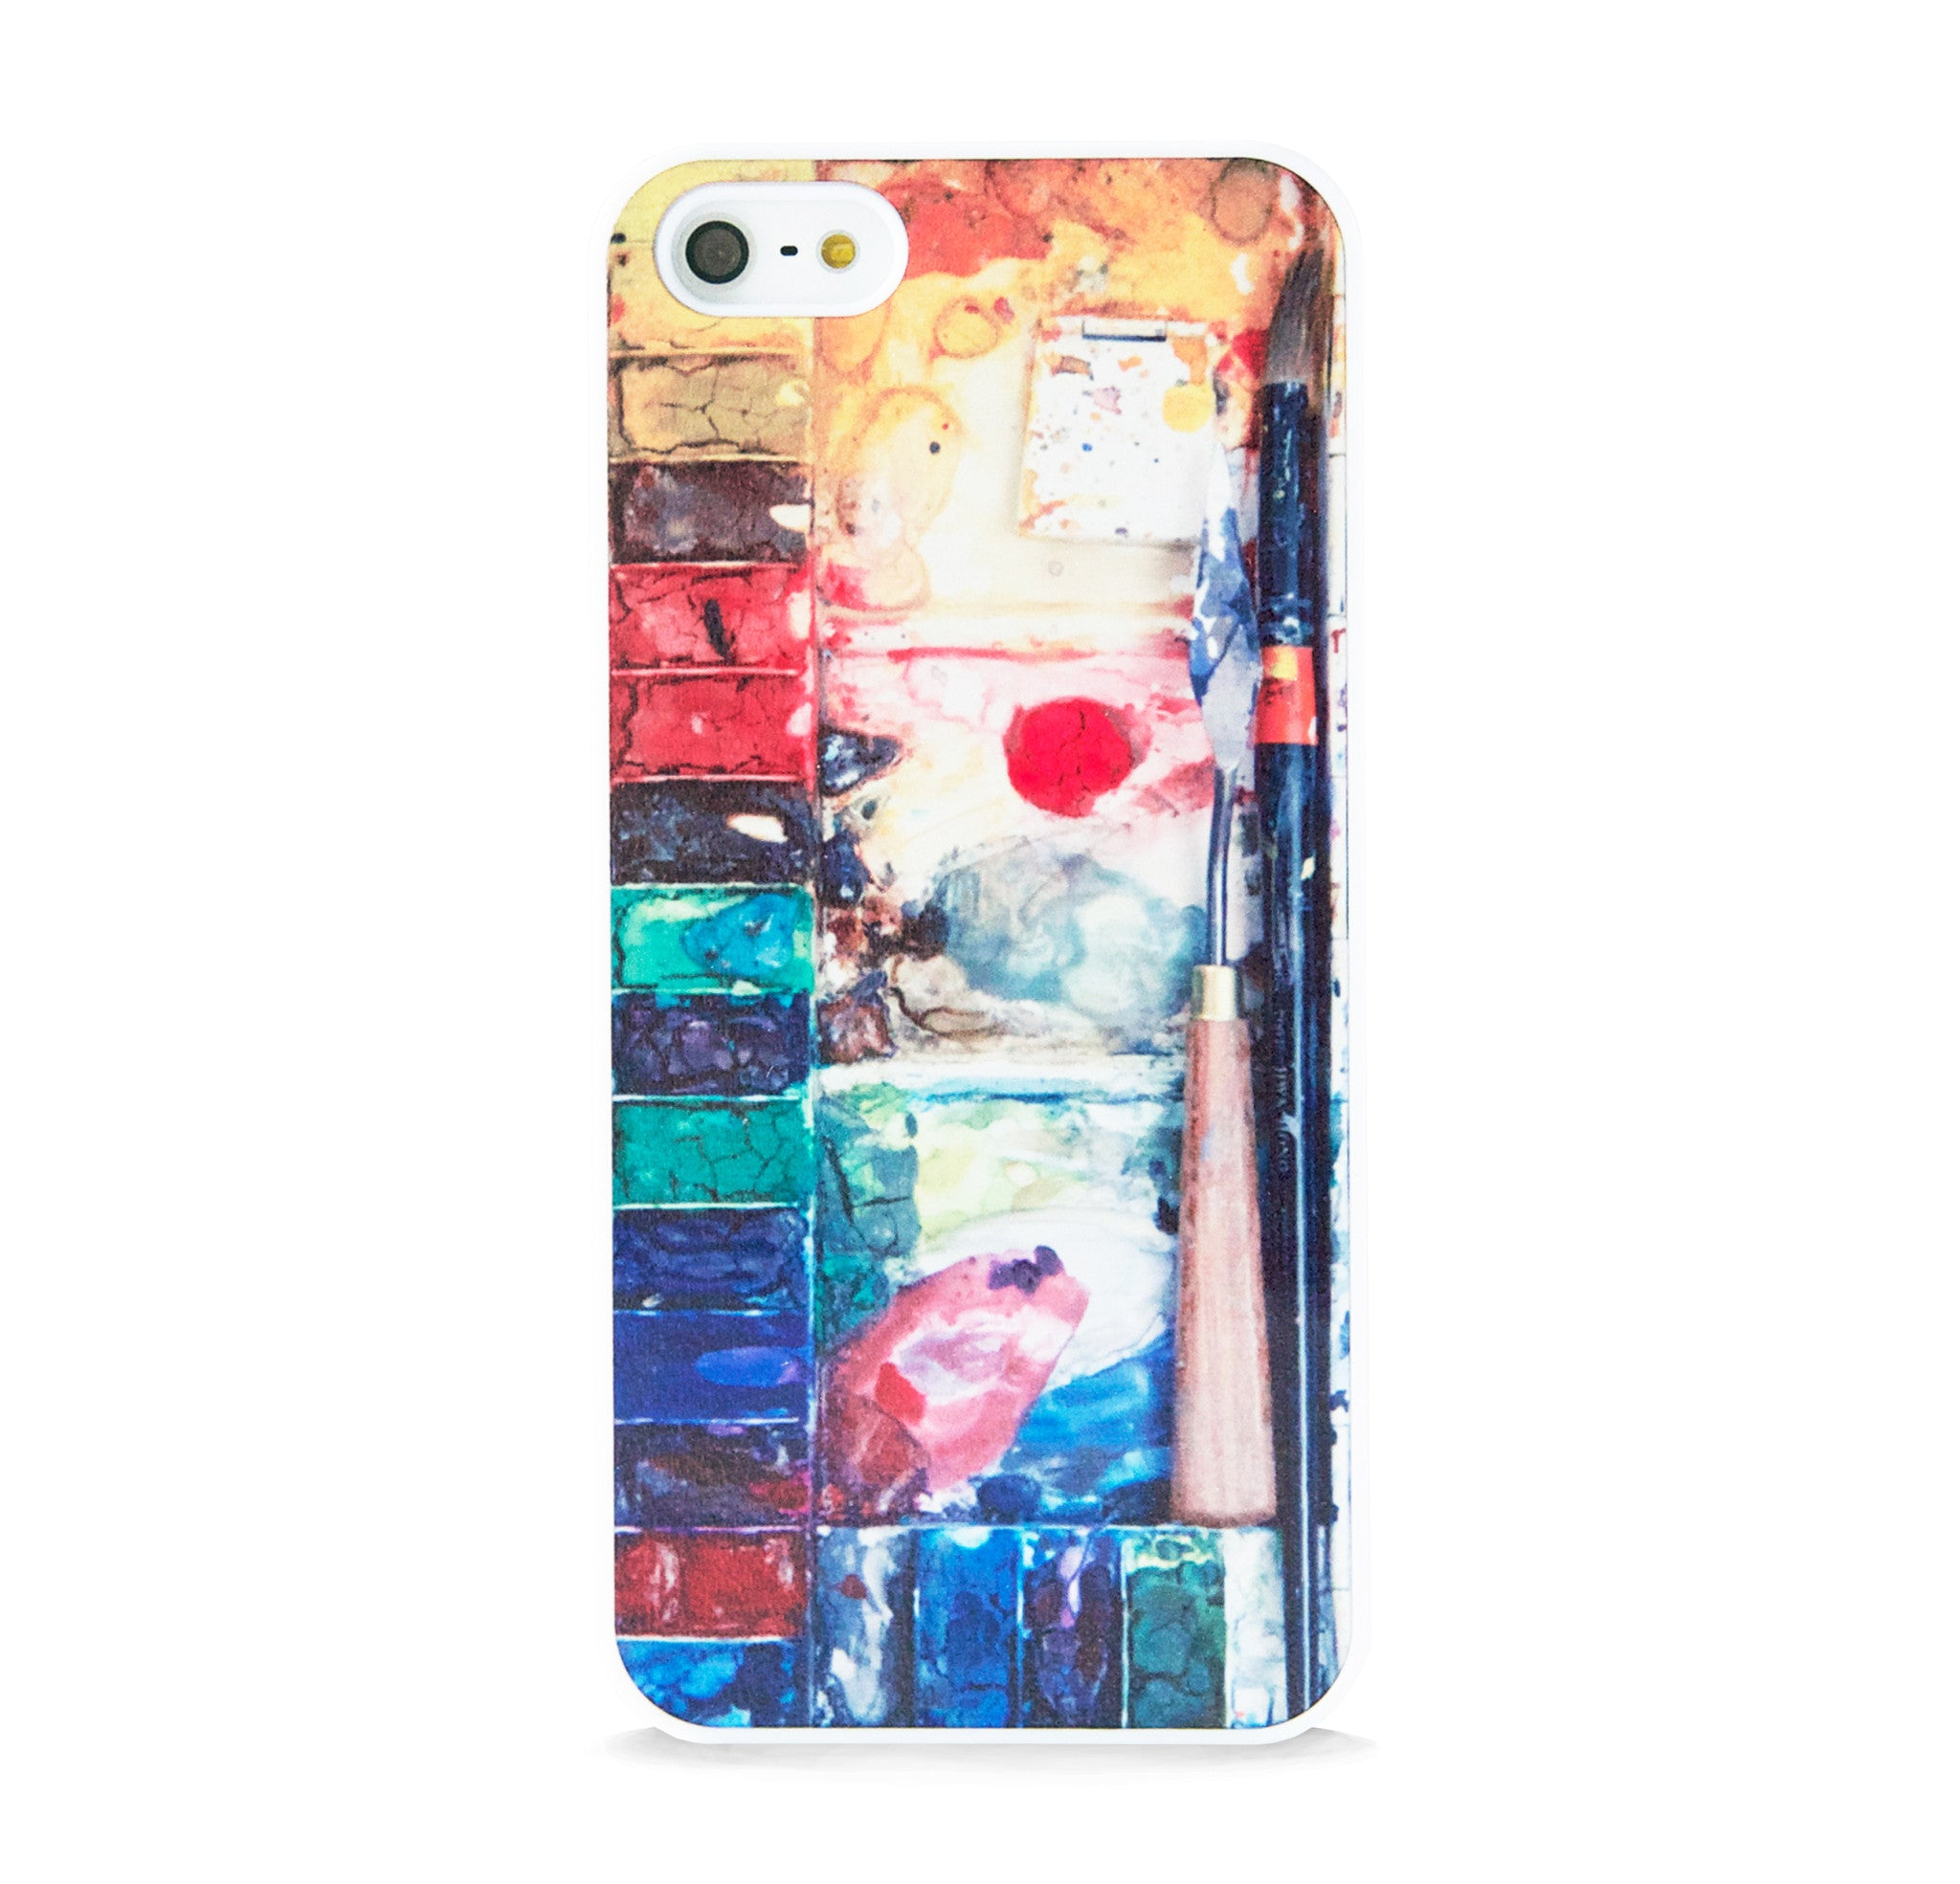 VINTAGE ARTIST PALETTE FOR IPHONE 5/5S, IPHONE SE